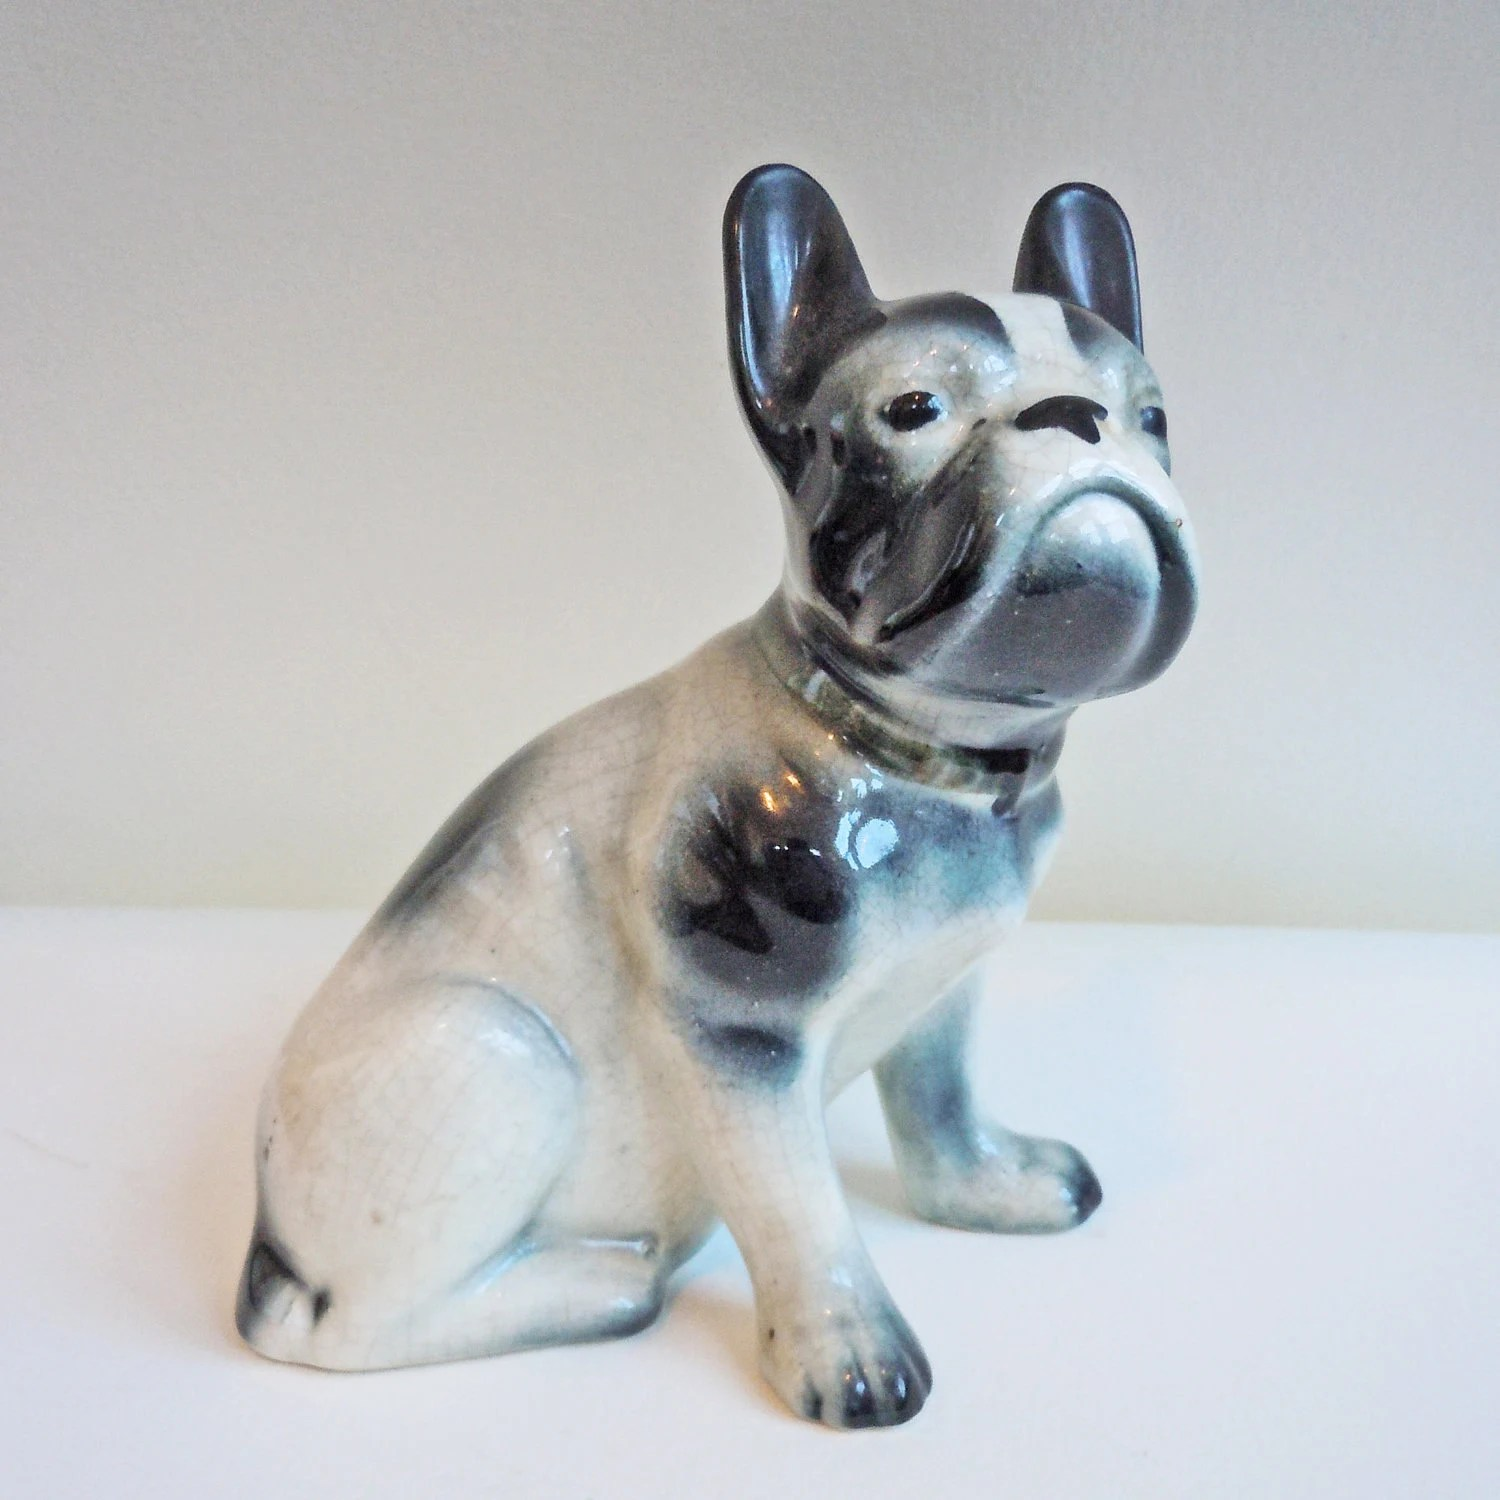 Vintage 1940s French Bulldog Figurine to benefit French